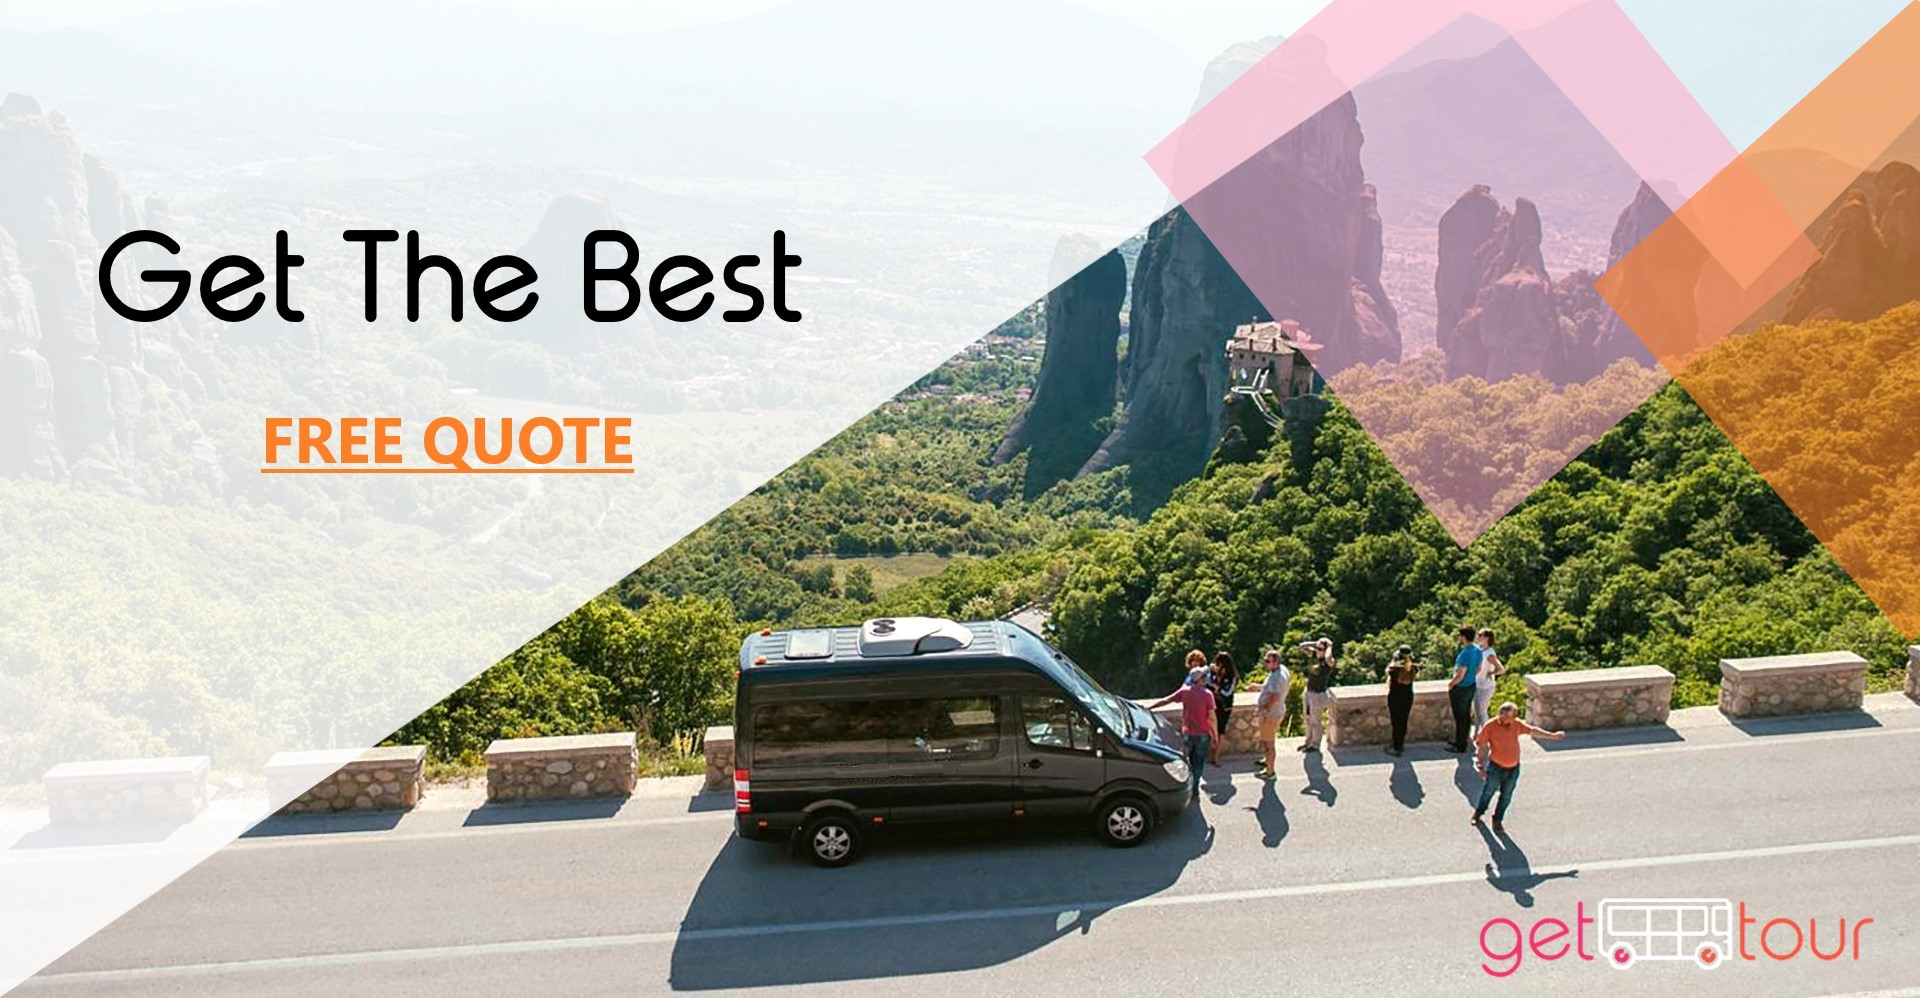 Get Bus Tour Trip Travel Getting to from around plane car driver local guide coach rental day trip transfer transportation taxi private airport hotel sight seeing tours shuttle visit way minibus chauffeur ride 41